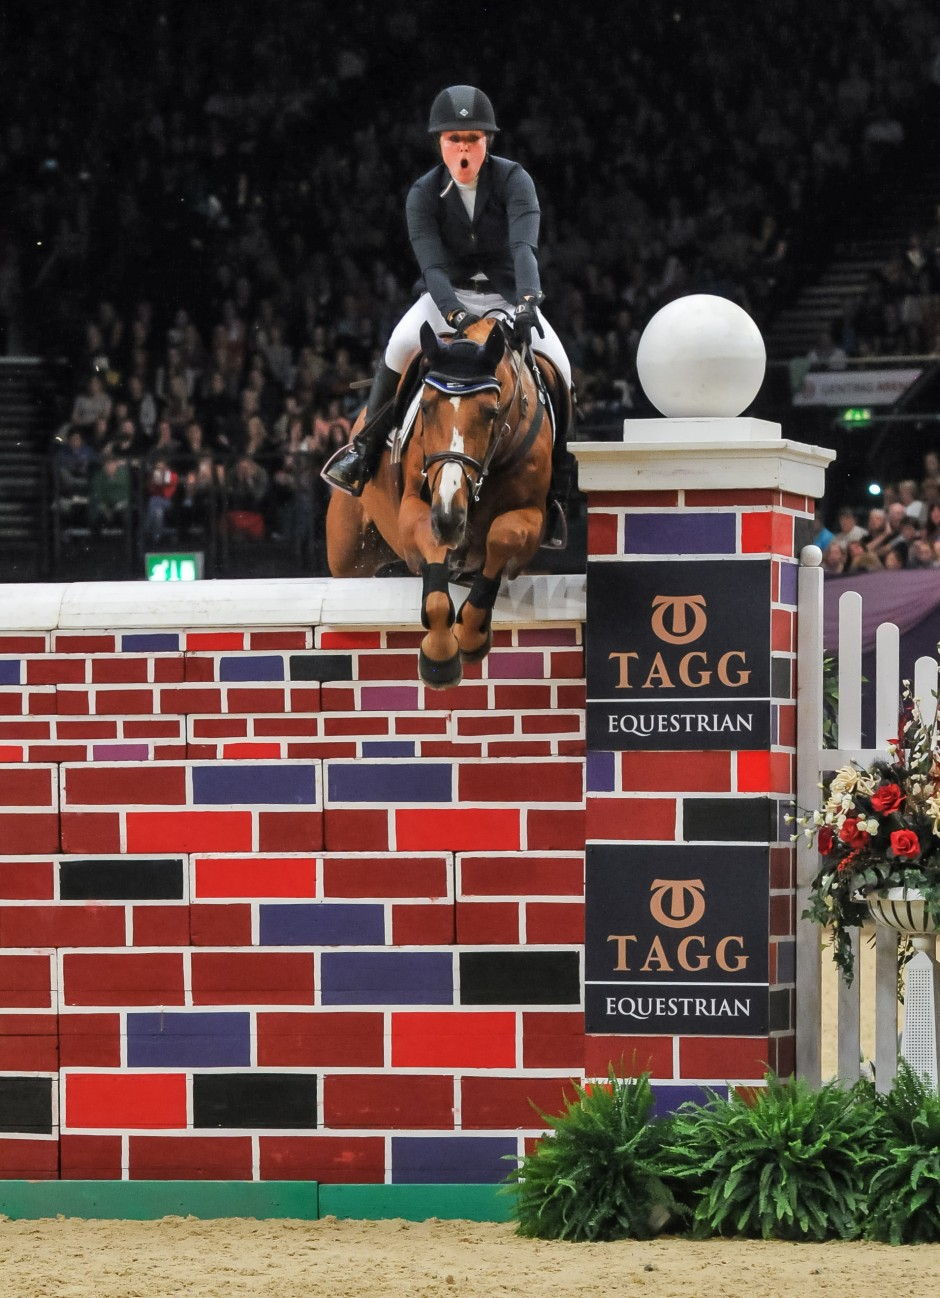 Victoria Gulliksen - joint winner of the puissance